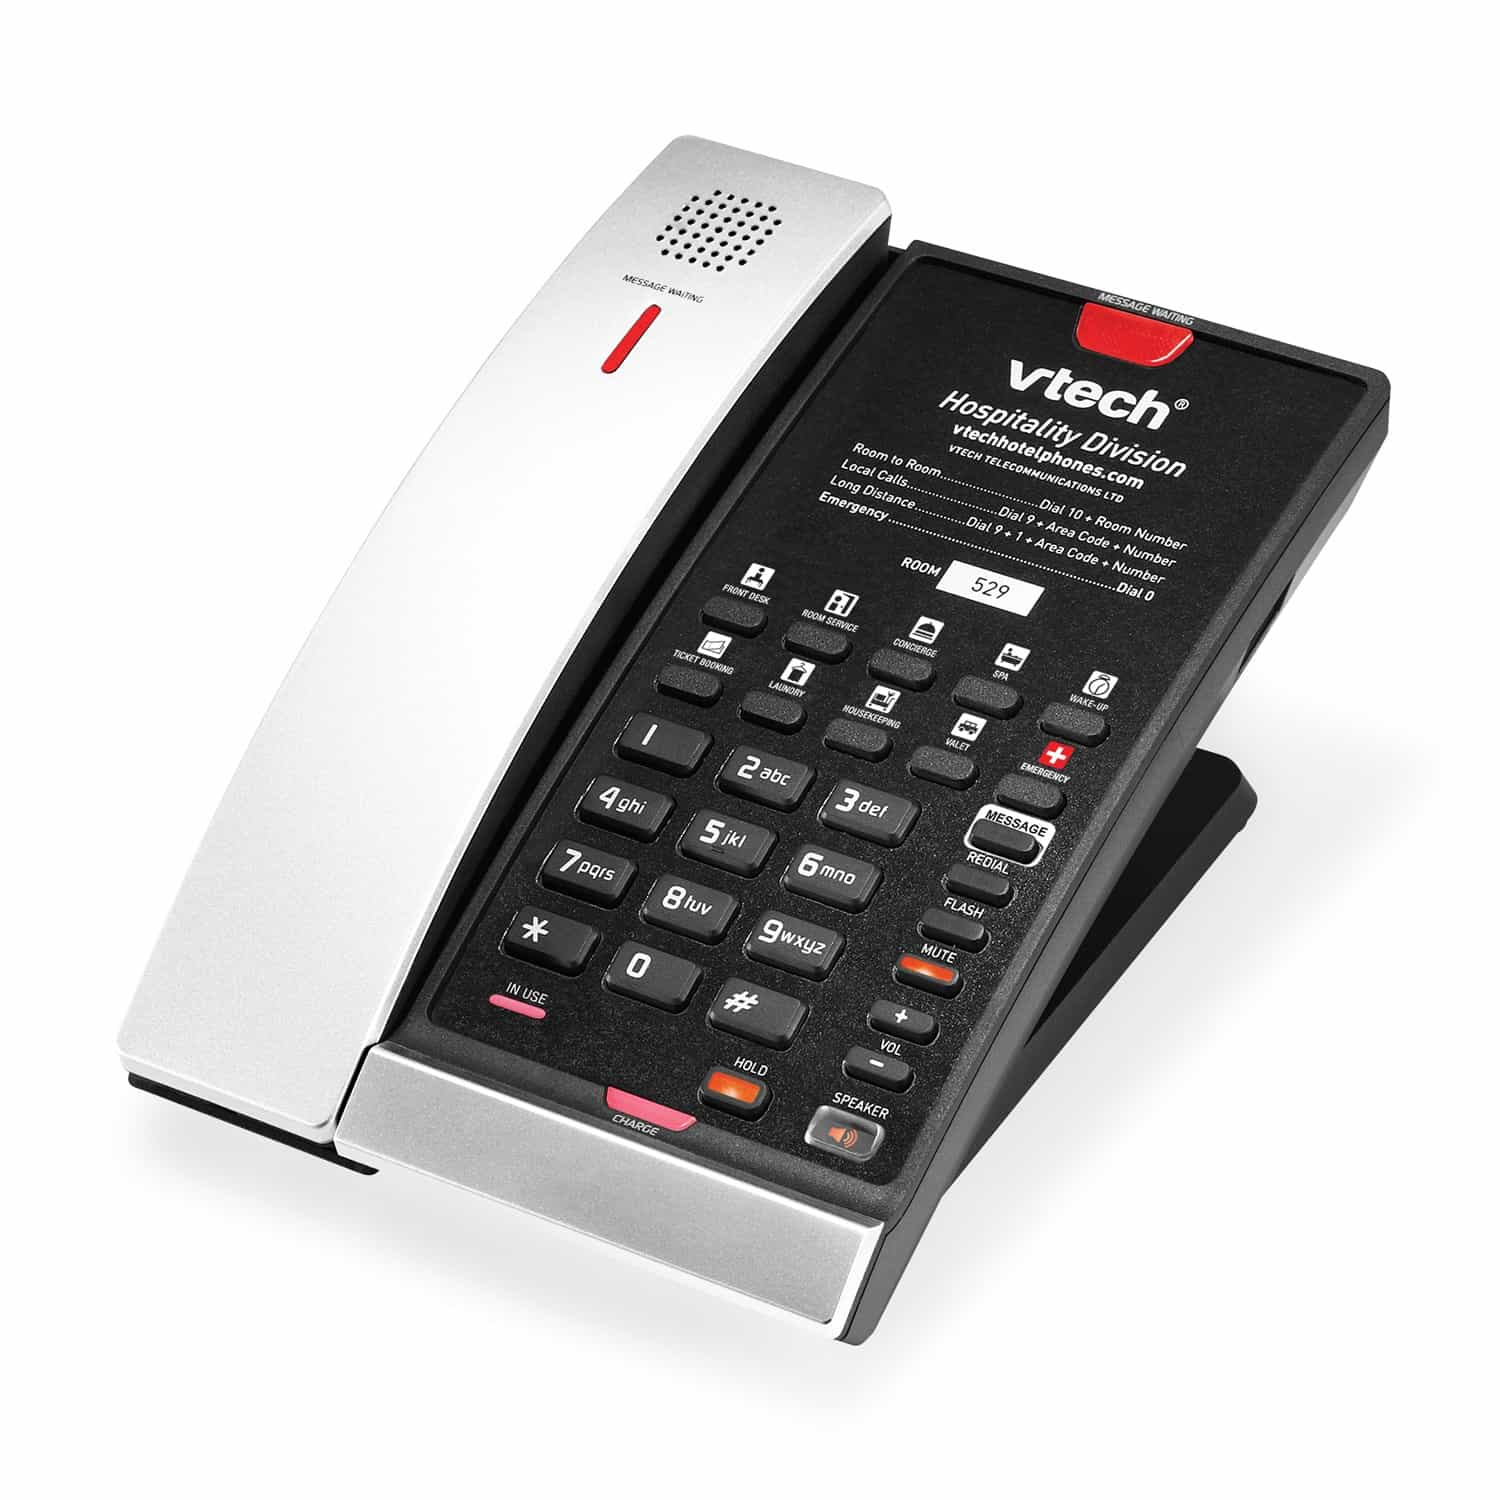 VTech CTM A2411 in silver and black